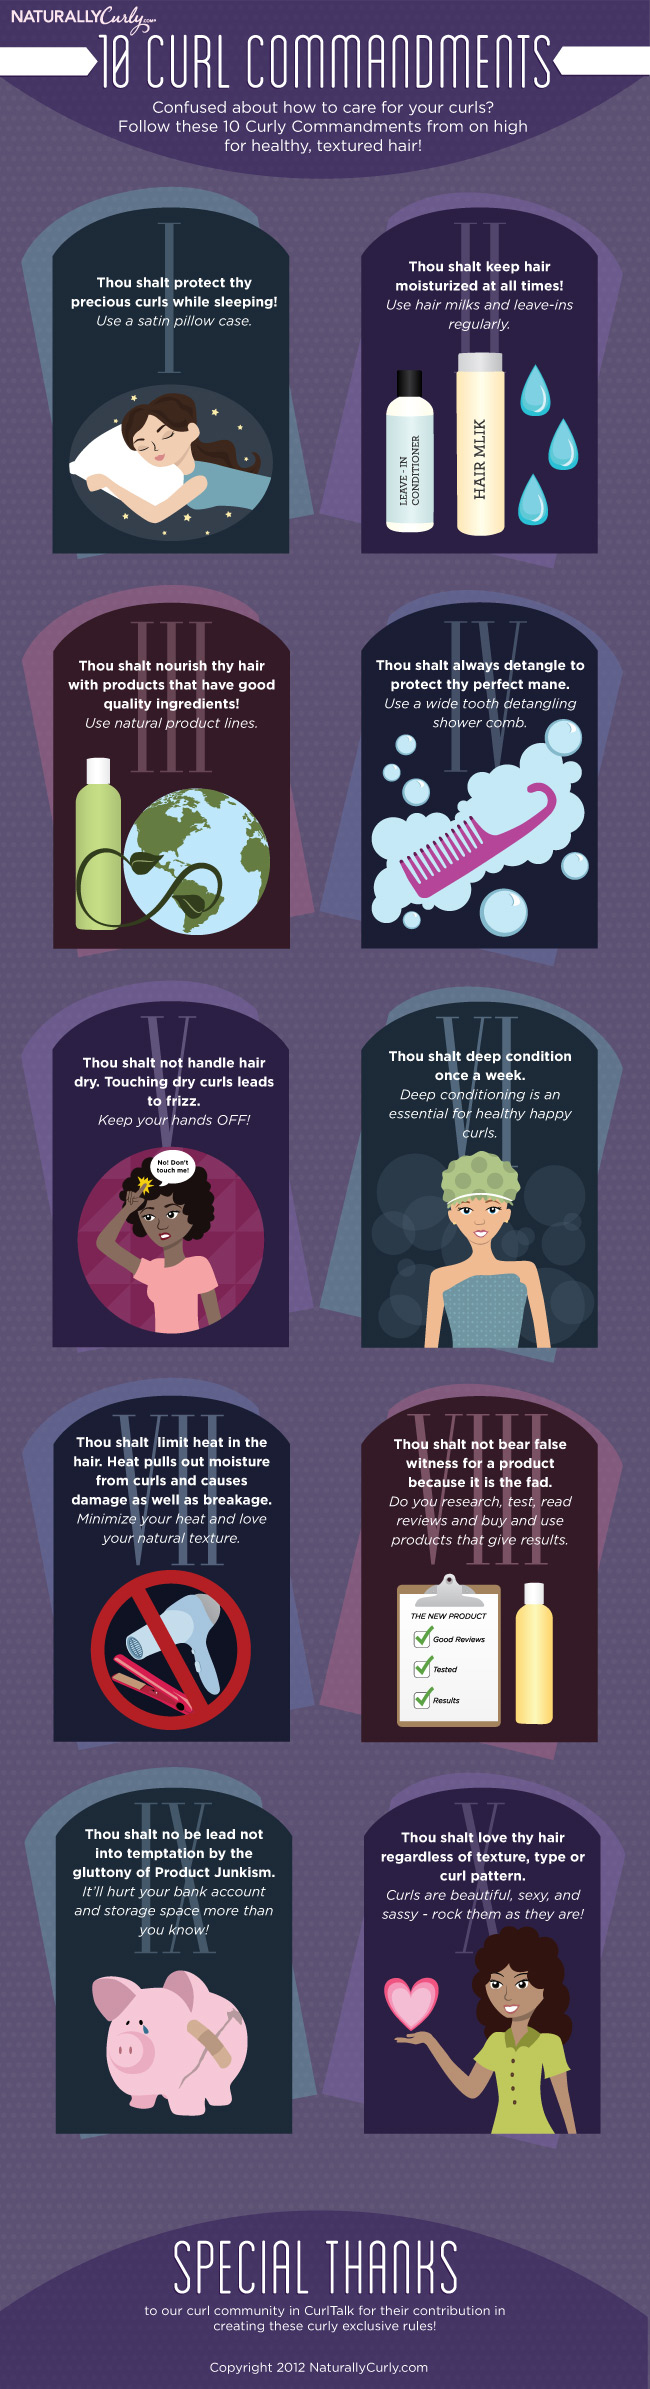 The 10 Curl Commandments by NaturallyCurly.com